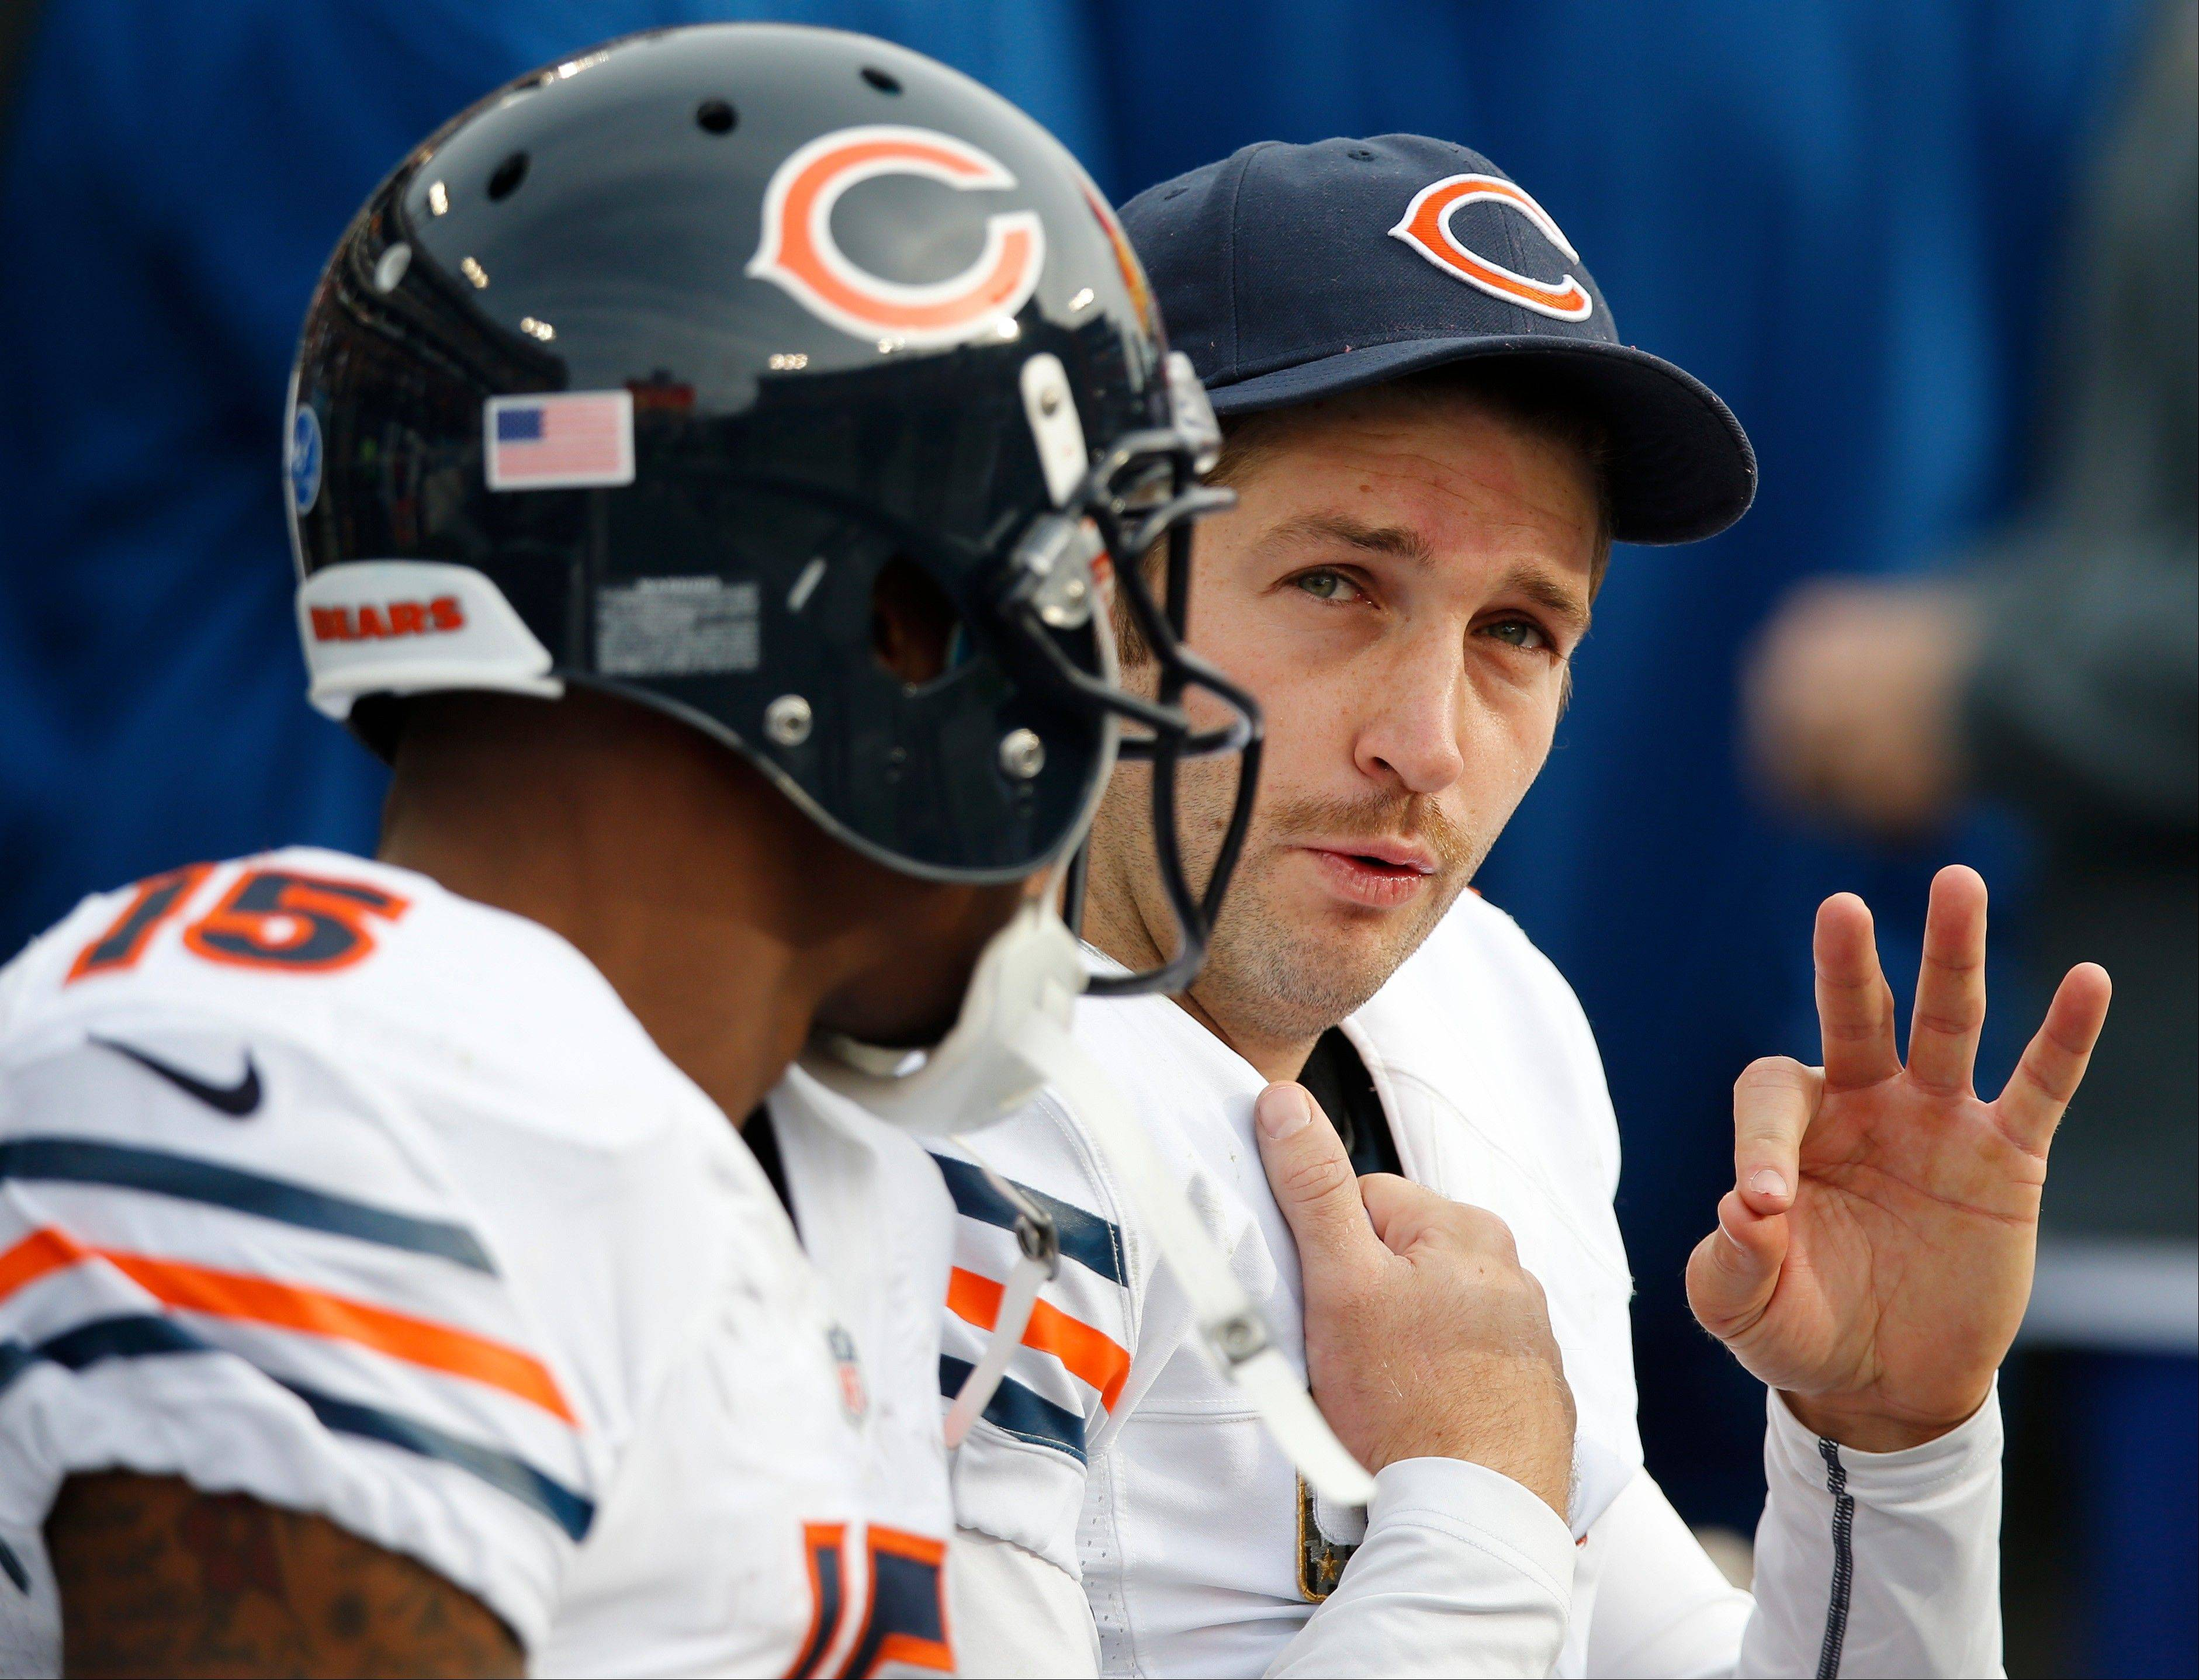 Bears quarterback Jay Cutler, right, says he doesn't know if he'll be able to play Sunday against the Minnesota Vikings, but he hopes to practice on Thursday with the team.